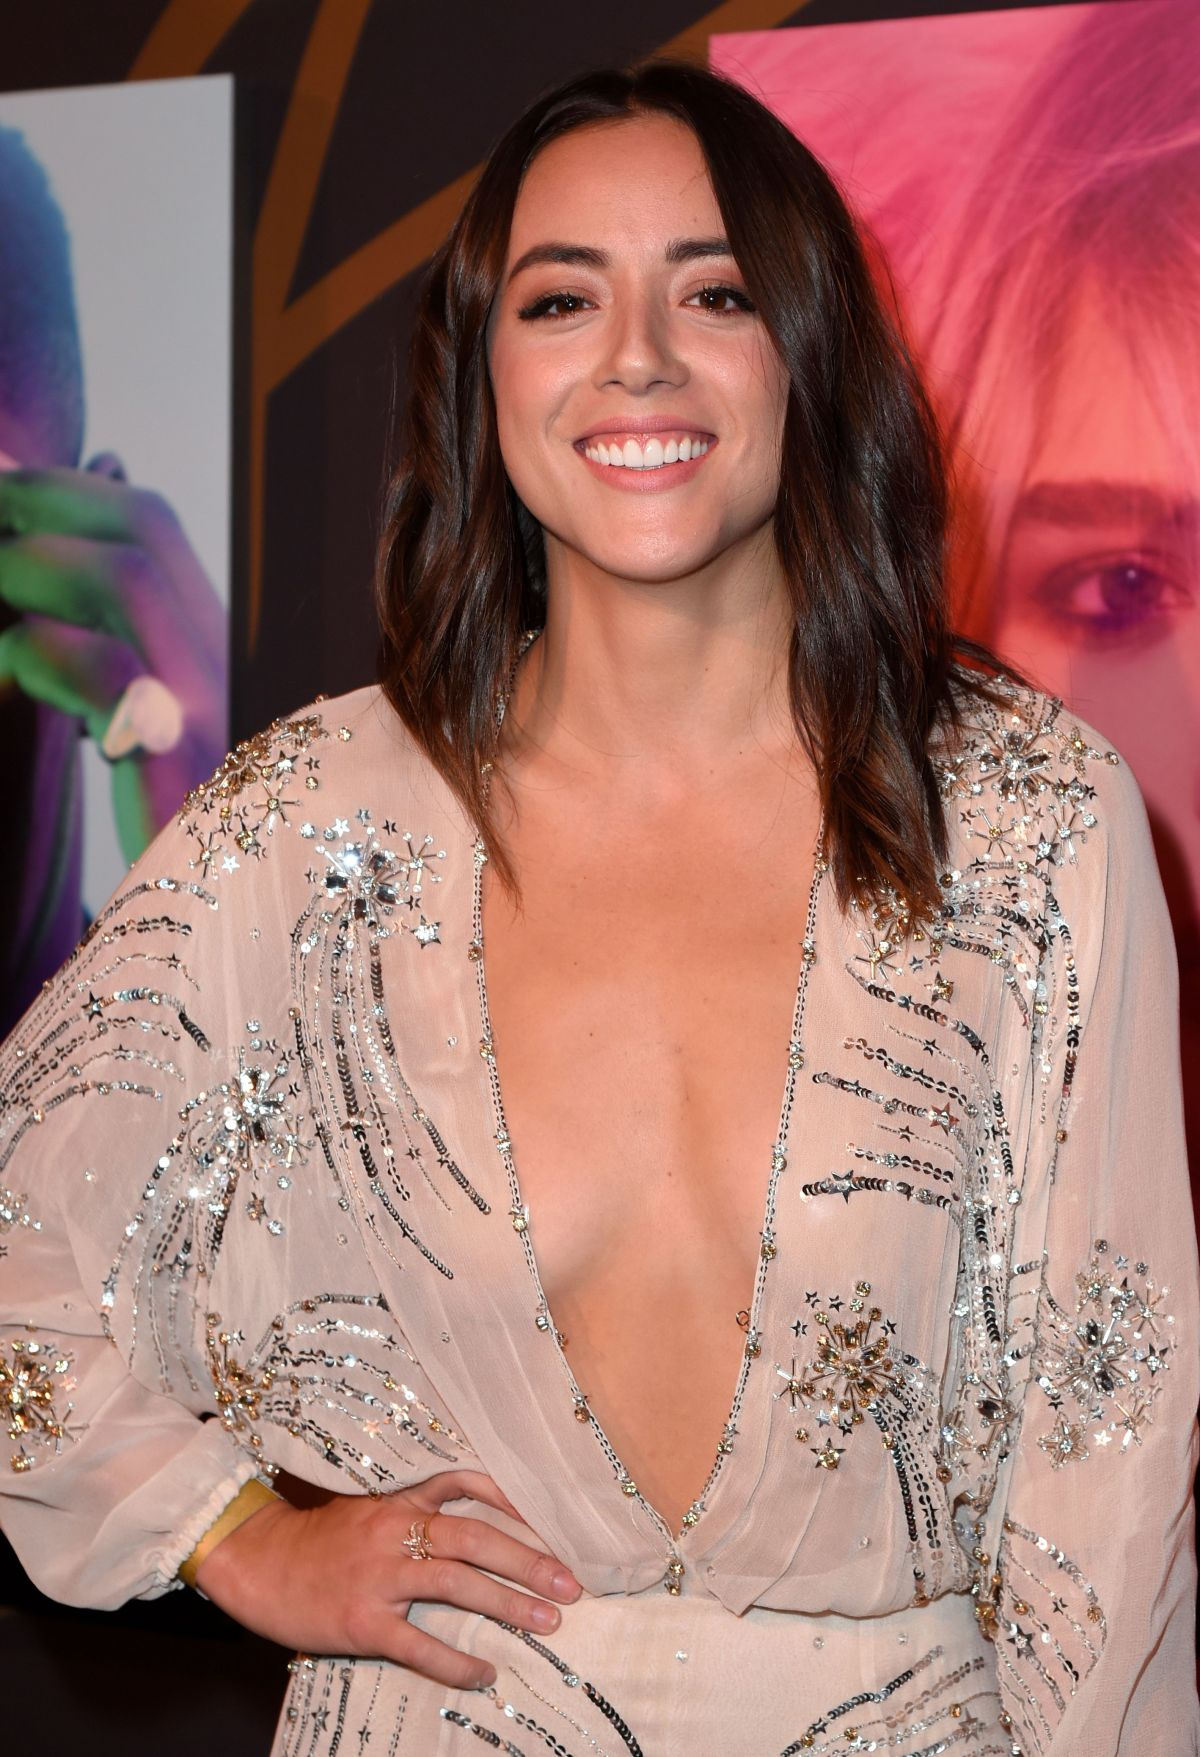 Young Chloe Bennet nudes (95 foto and video), Topless, Bikini, Boobs, legs 2015